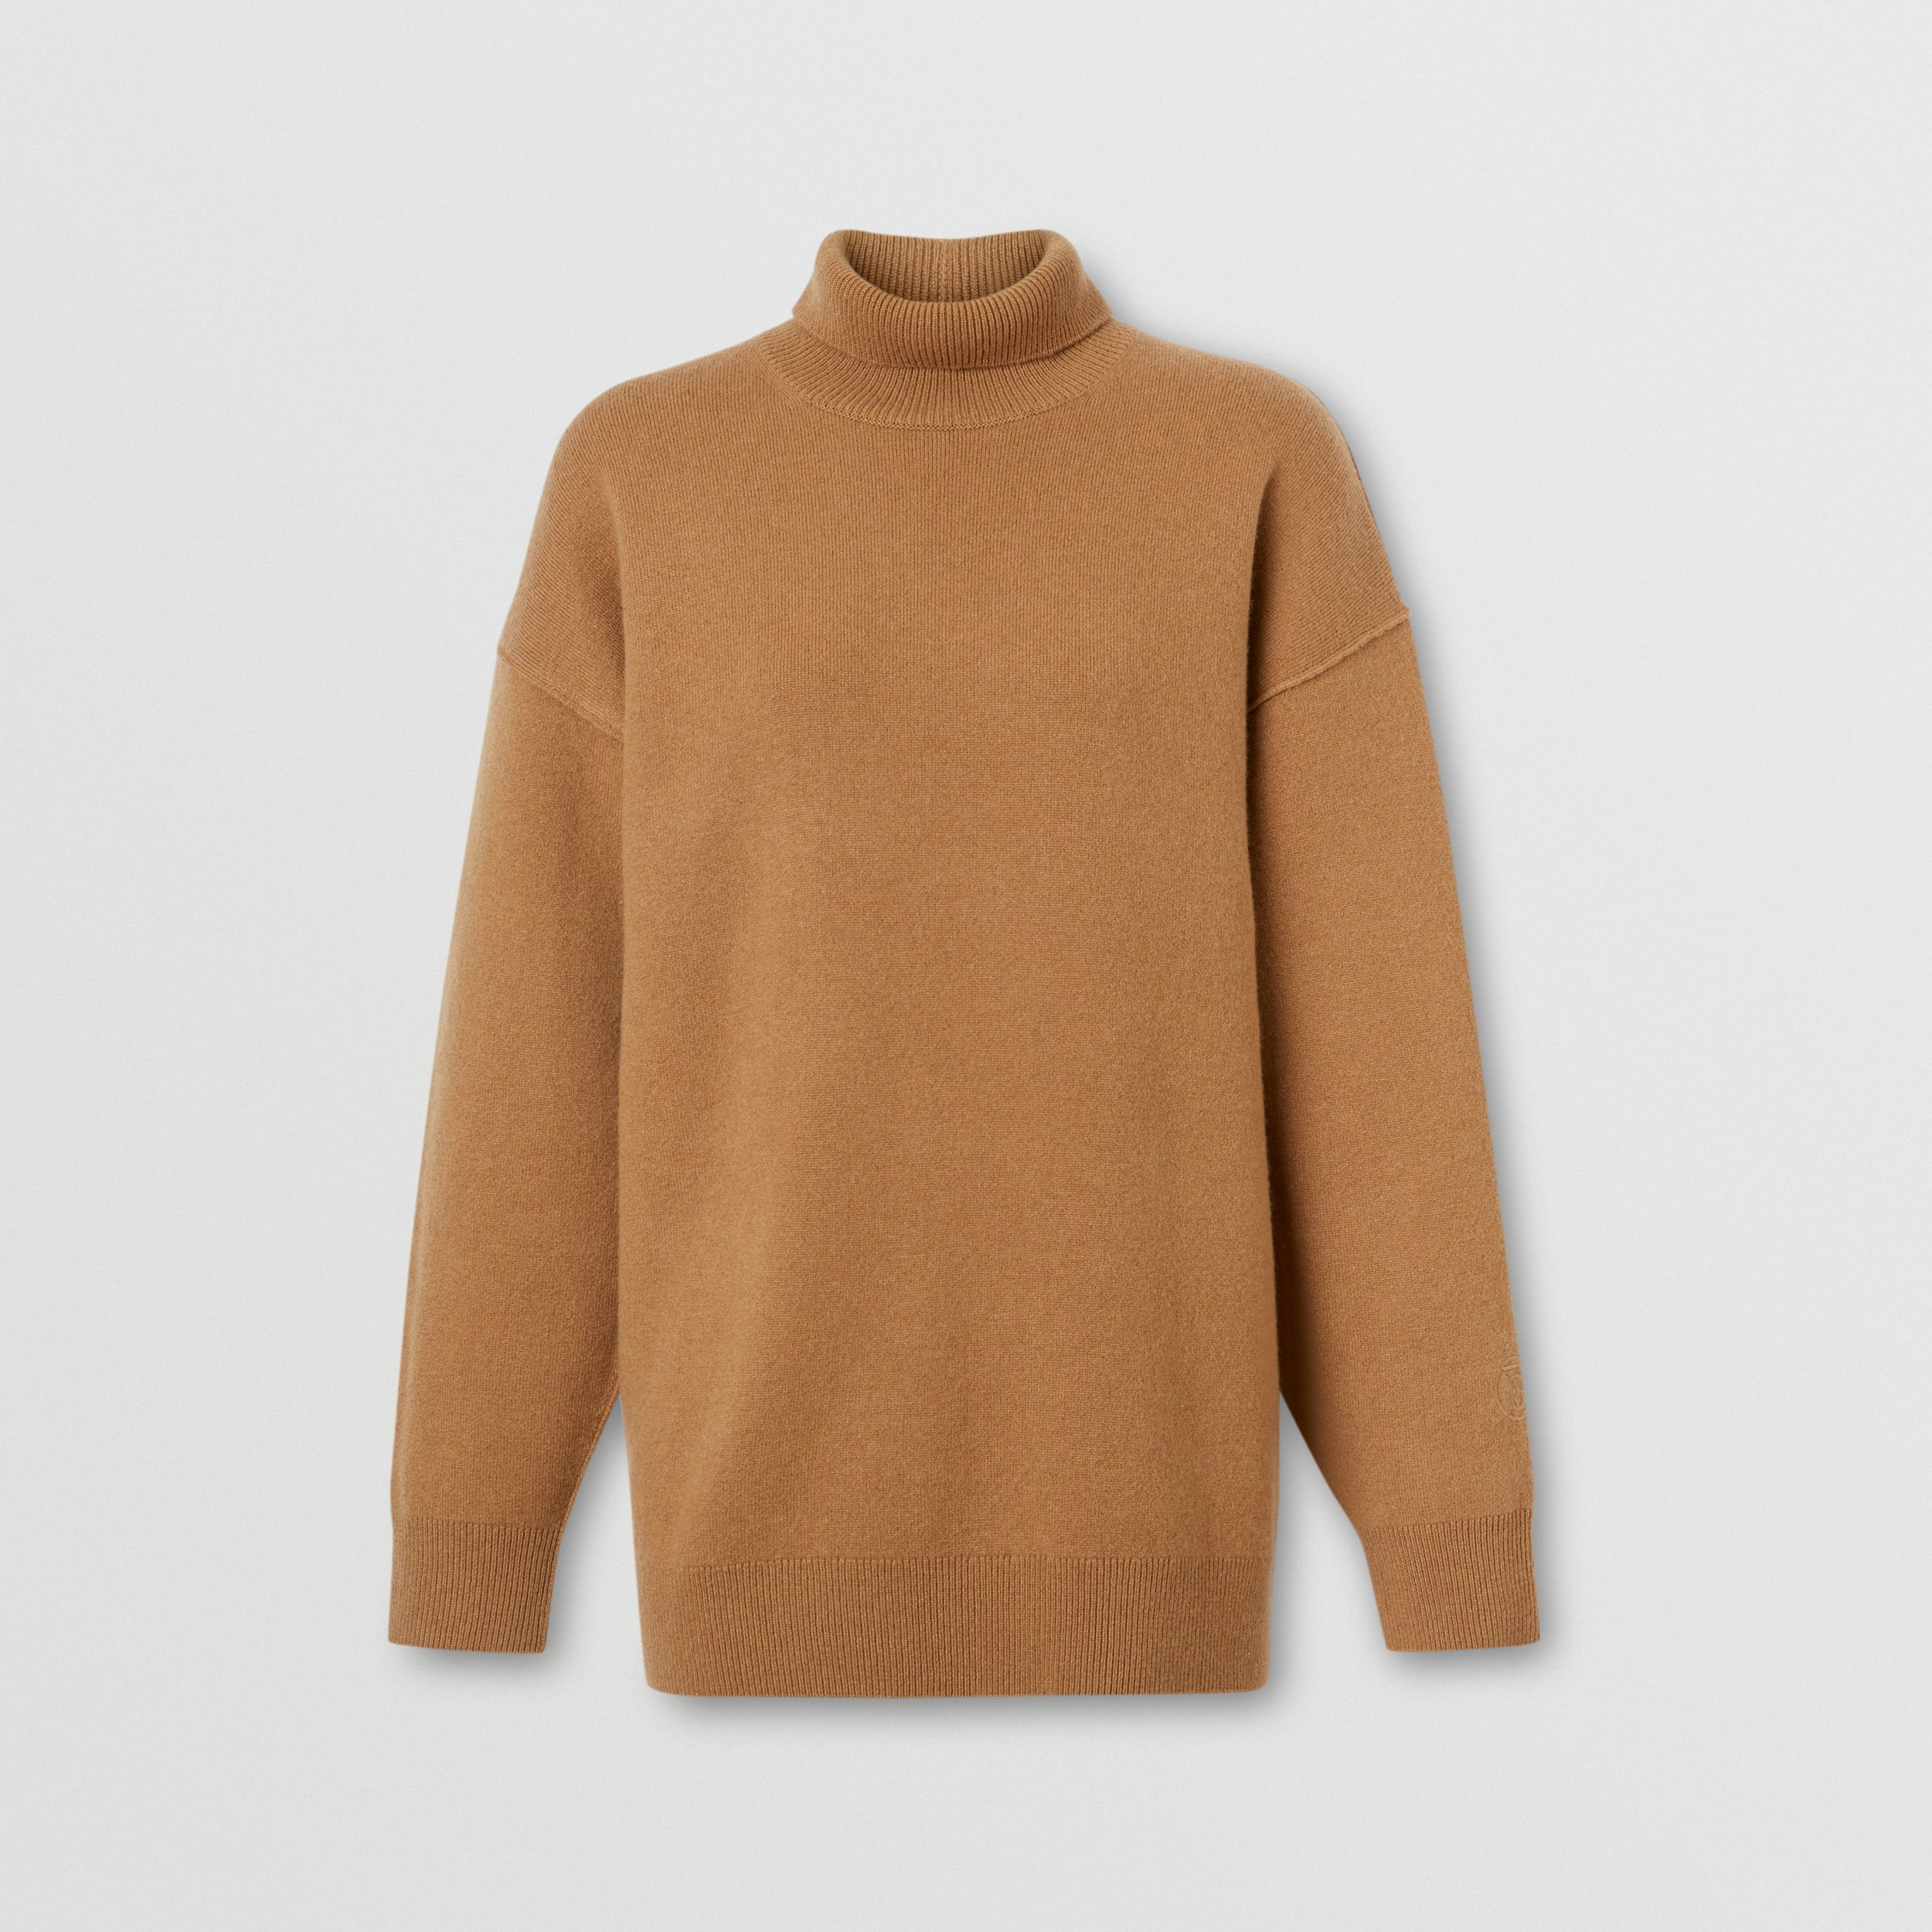 Monogram Motif Cashmere Blend Funnel Neck Sweater in Camel - Women | Burberry Australia - 3